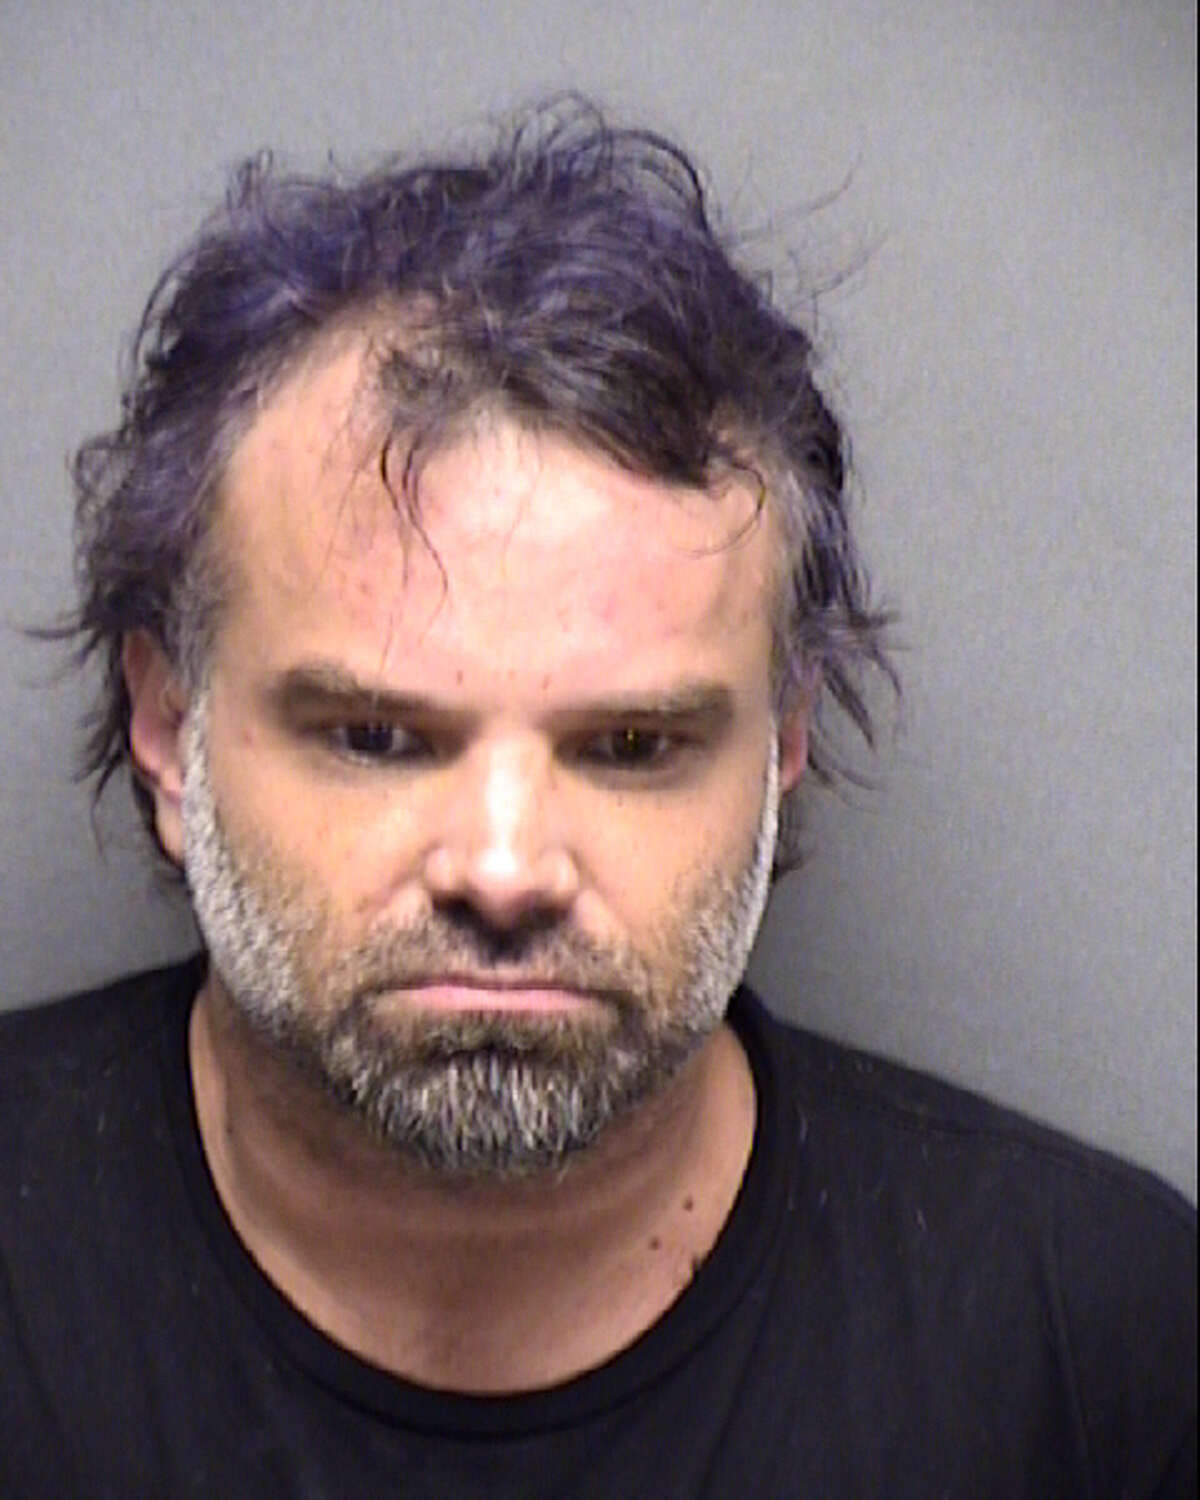 Mason David Caldwell, 43, was charged with online solicitation of a minor under 17 years old on Tuesday.